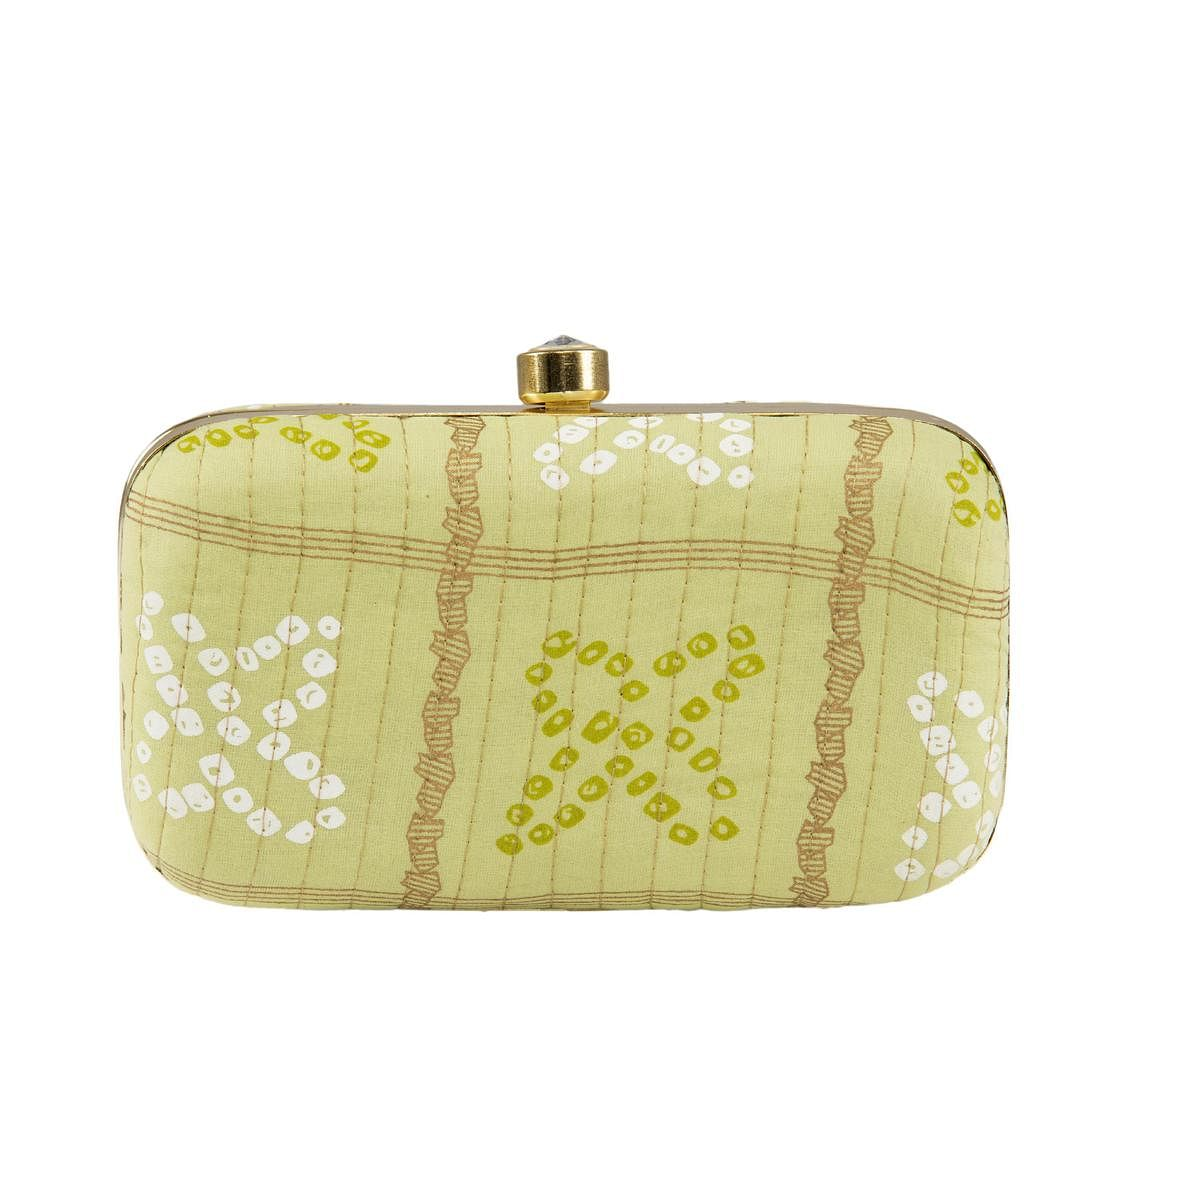 TMN Green Colored Hand Embroidered Box Clutch Bag Purse